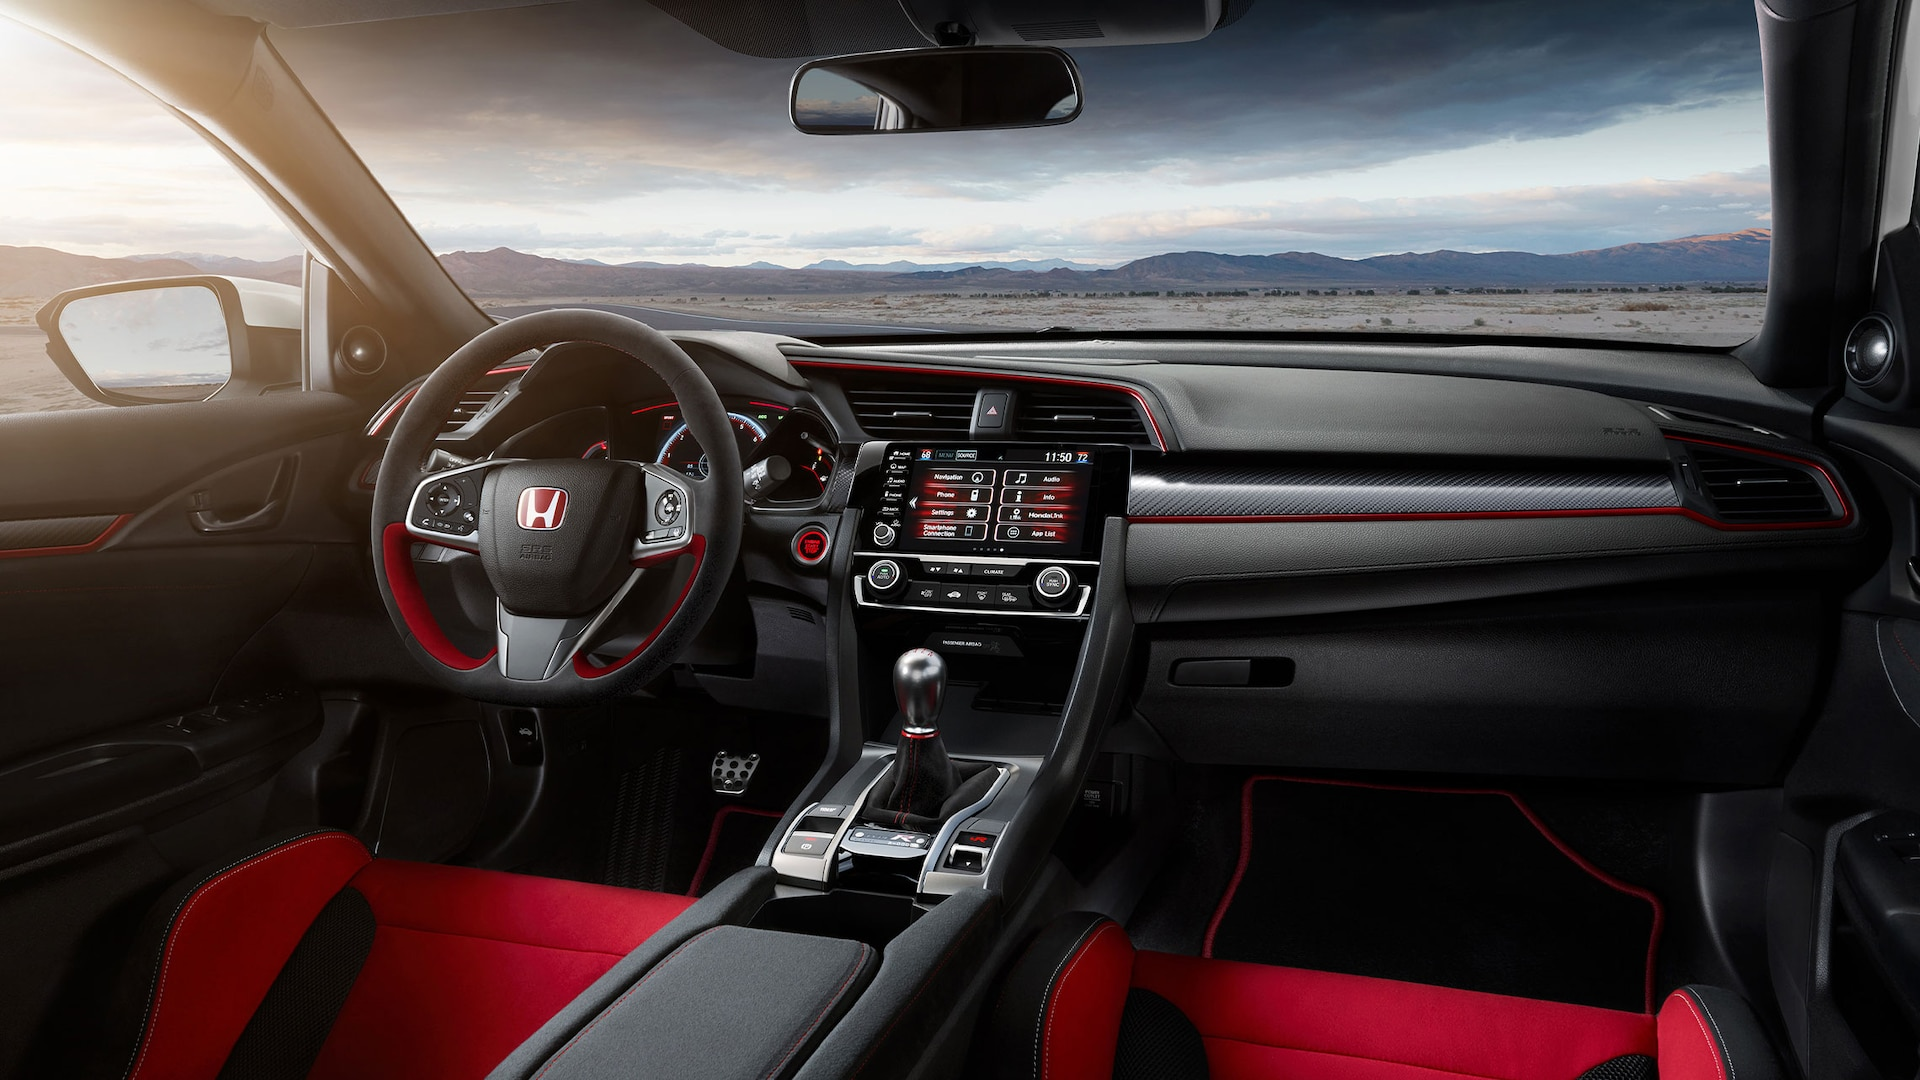 Interior dash view of the 2021 Honda Civic Type R.